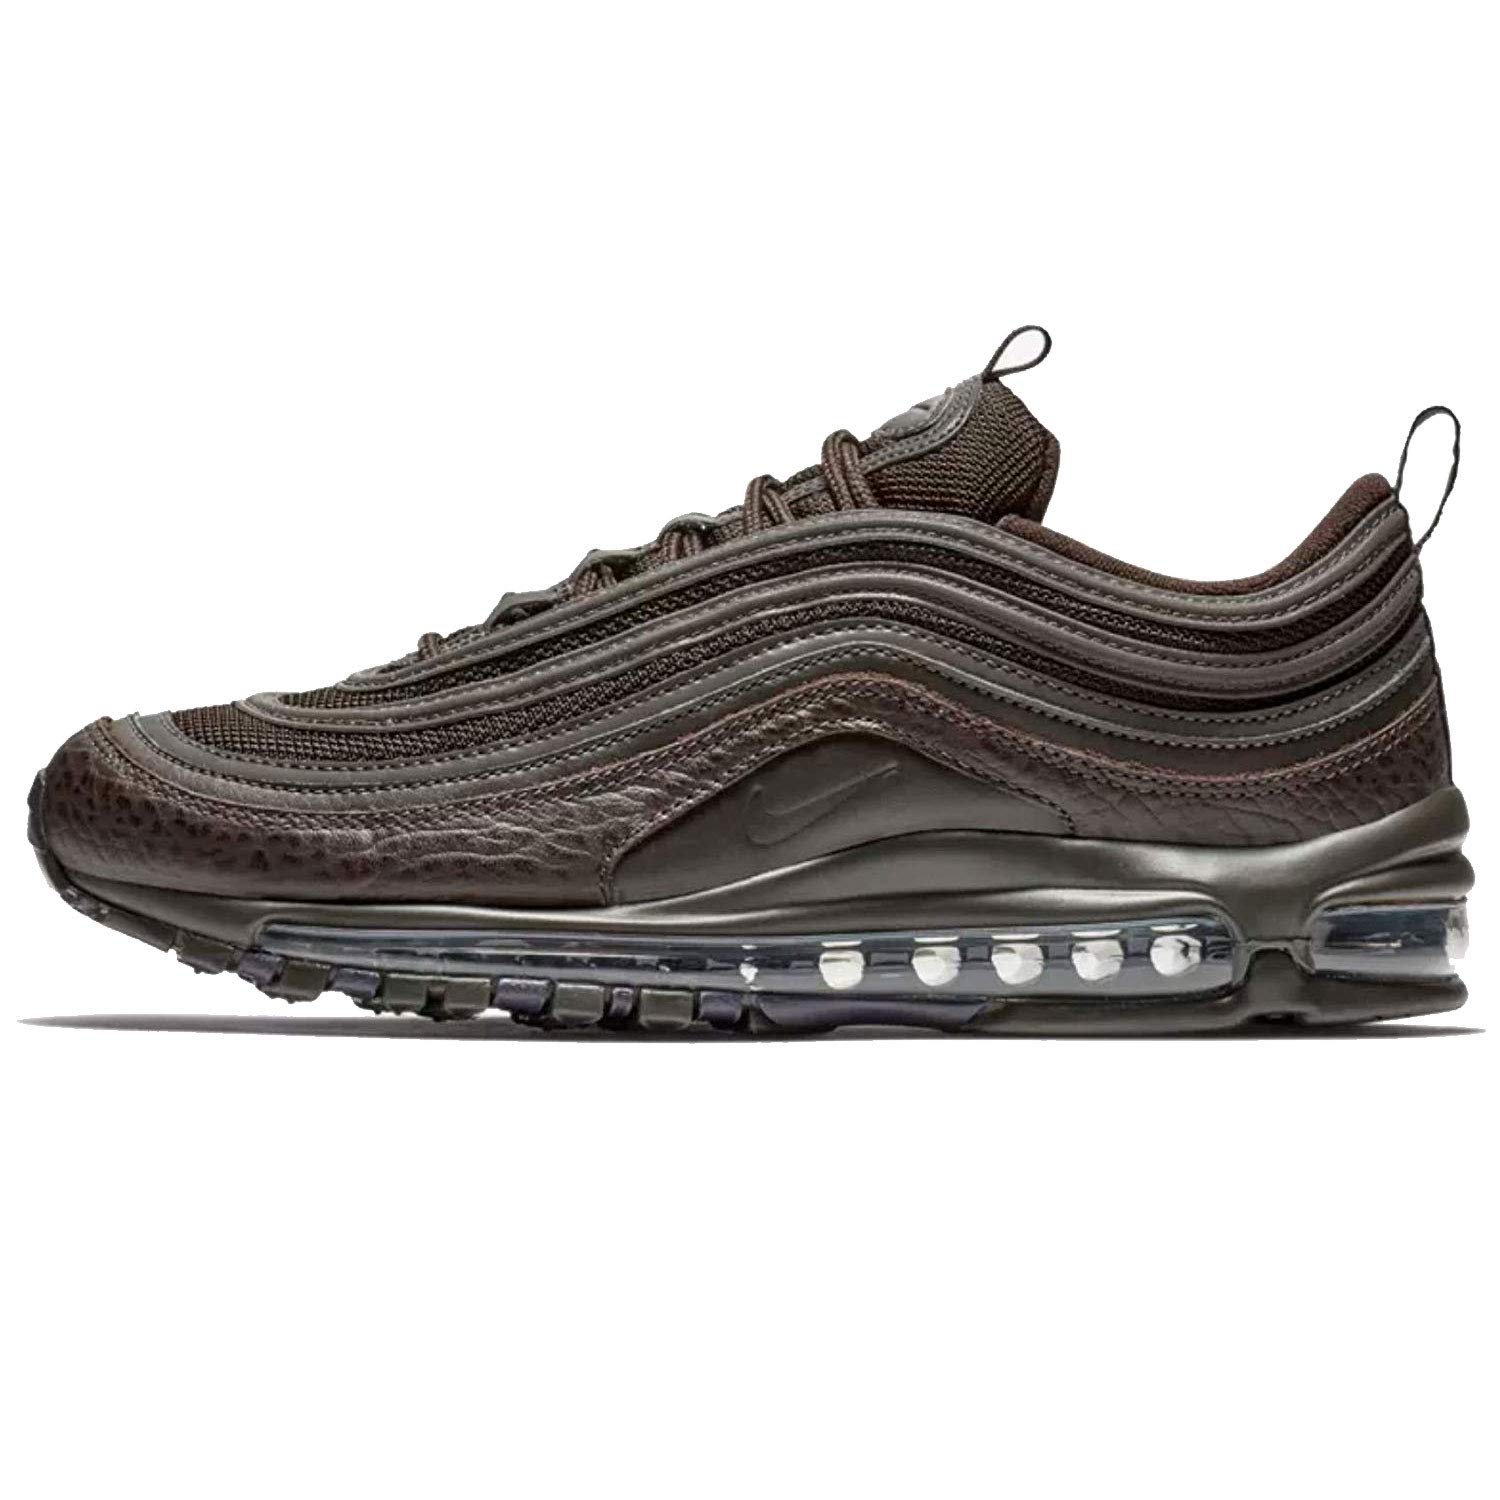 Nike Air Max 97 Se Mens Aq4126 201: Amazon.co.uk: Shoes & Bags